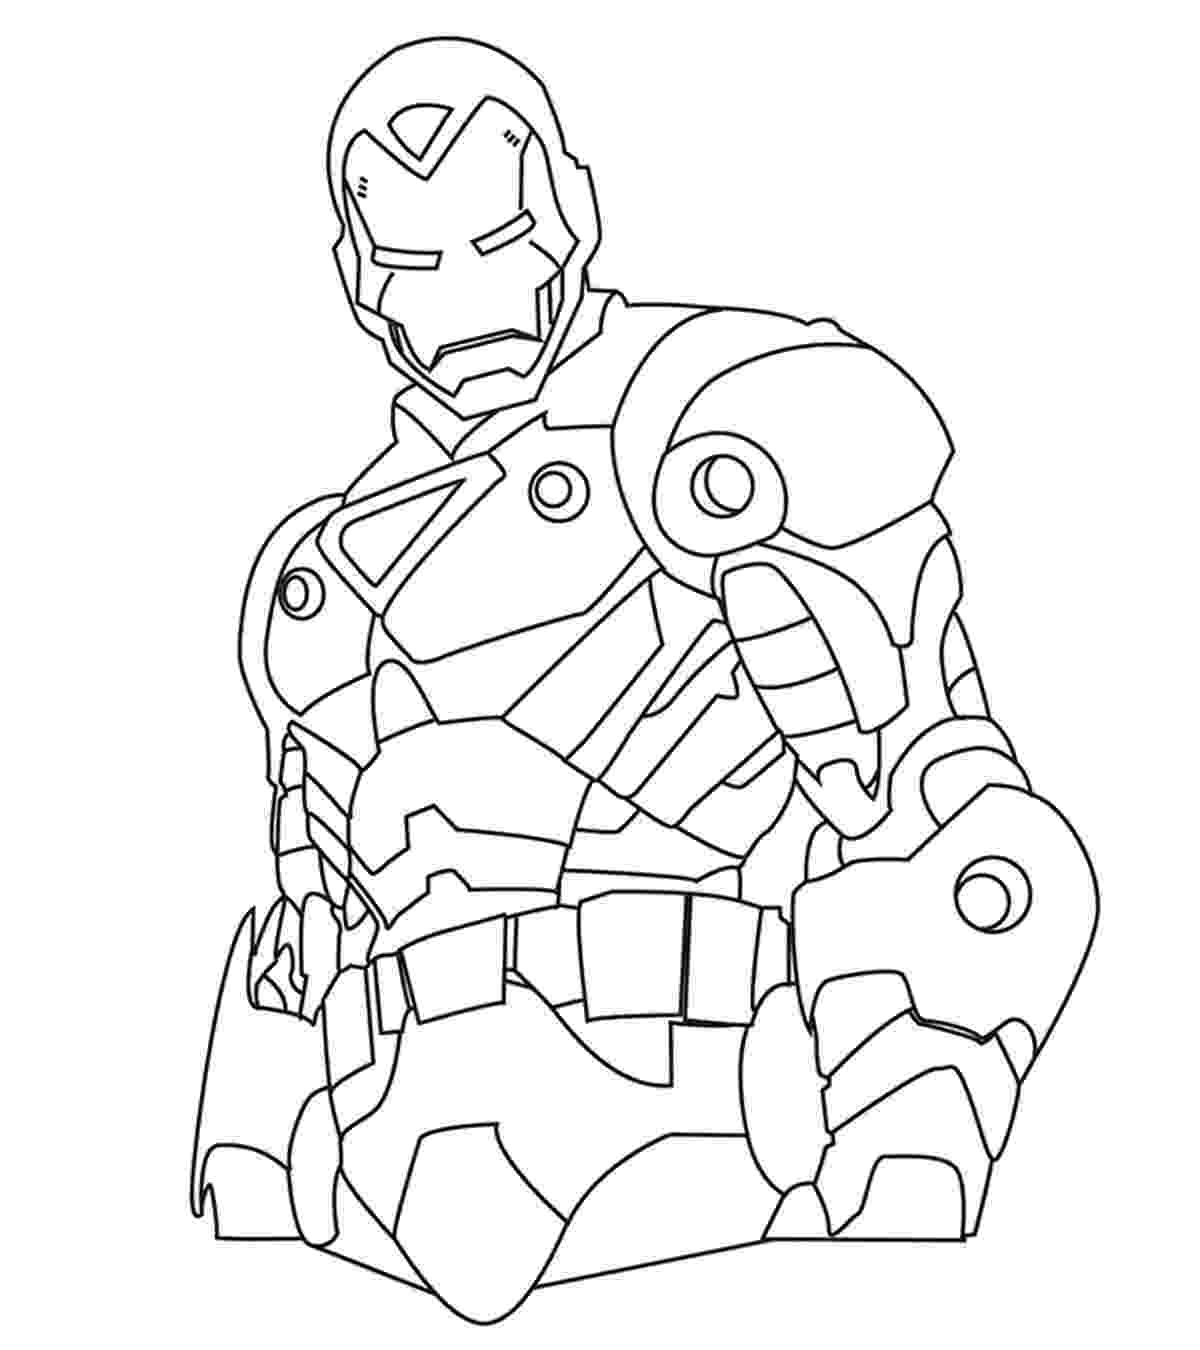 ironman colouring free printable iron man coloring pages for kids best ironman colouring 1 3